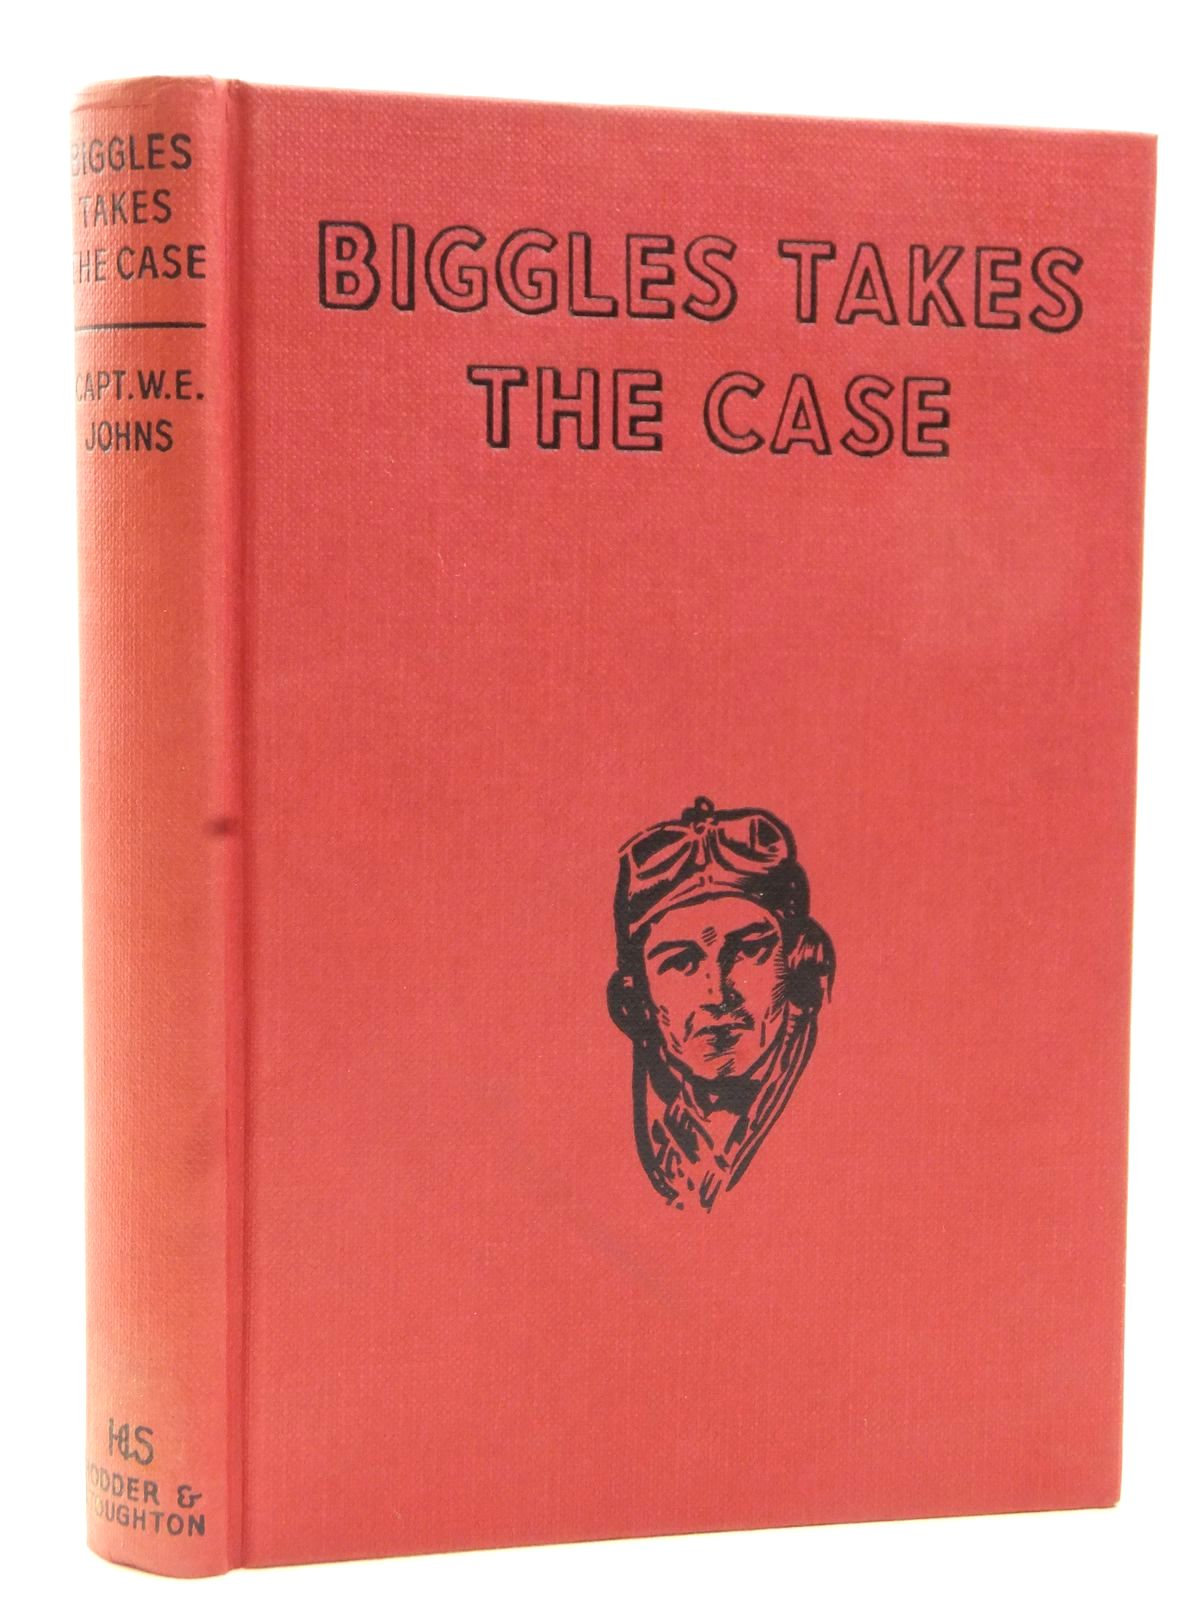 Photo of BIGGLES TAKES THE CASE written by Johns, W.E. illustrated by Stead, Leslie published by Hodder & Stoughton (STOCK CODE: 2123065)  for sale by Stella & Rose's Books